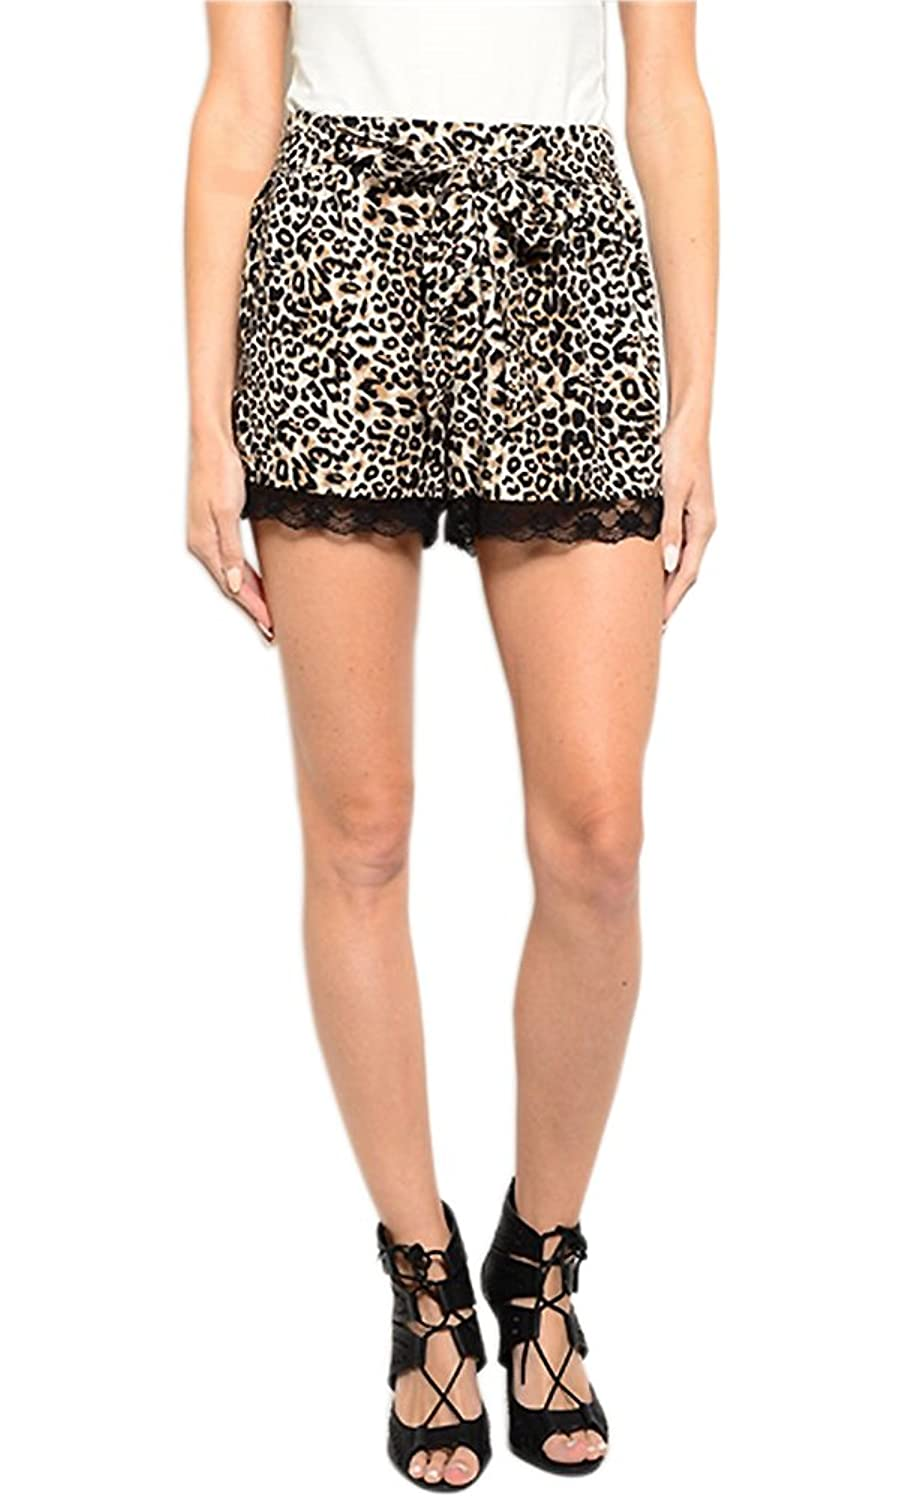 Hot sale 2017 have womens crochet leopard print shorts hubert hot sale 2017 have womens crochet leopard print shorts bankloansurffo Choice Image